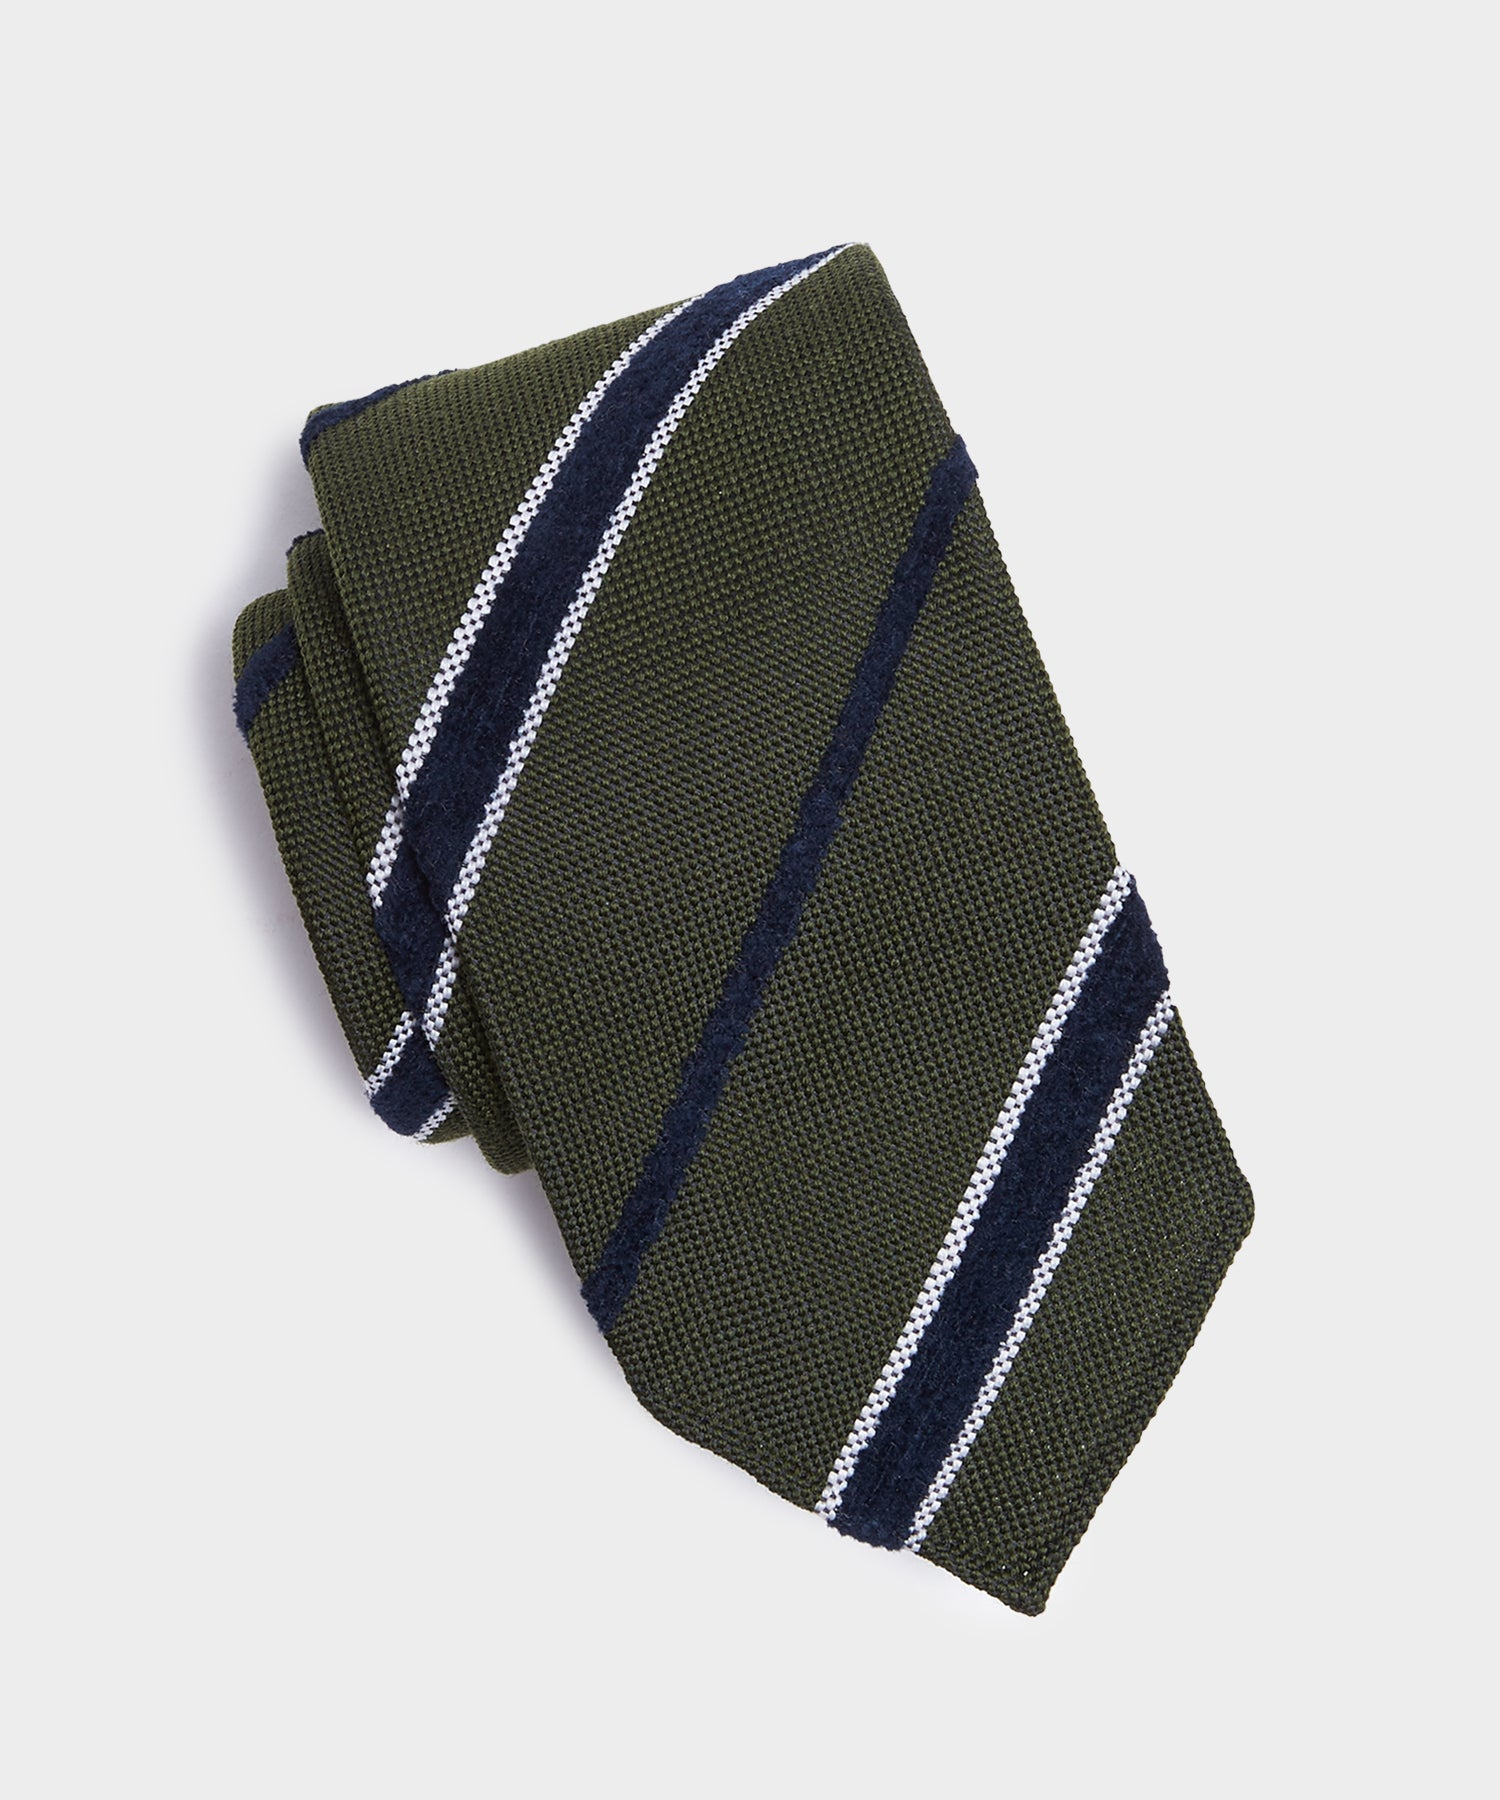 Drake's Boucle Striped Tie in Olive